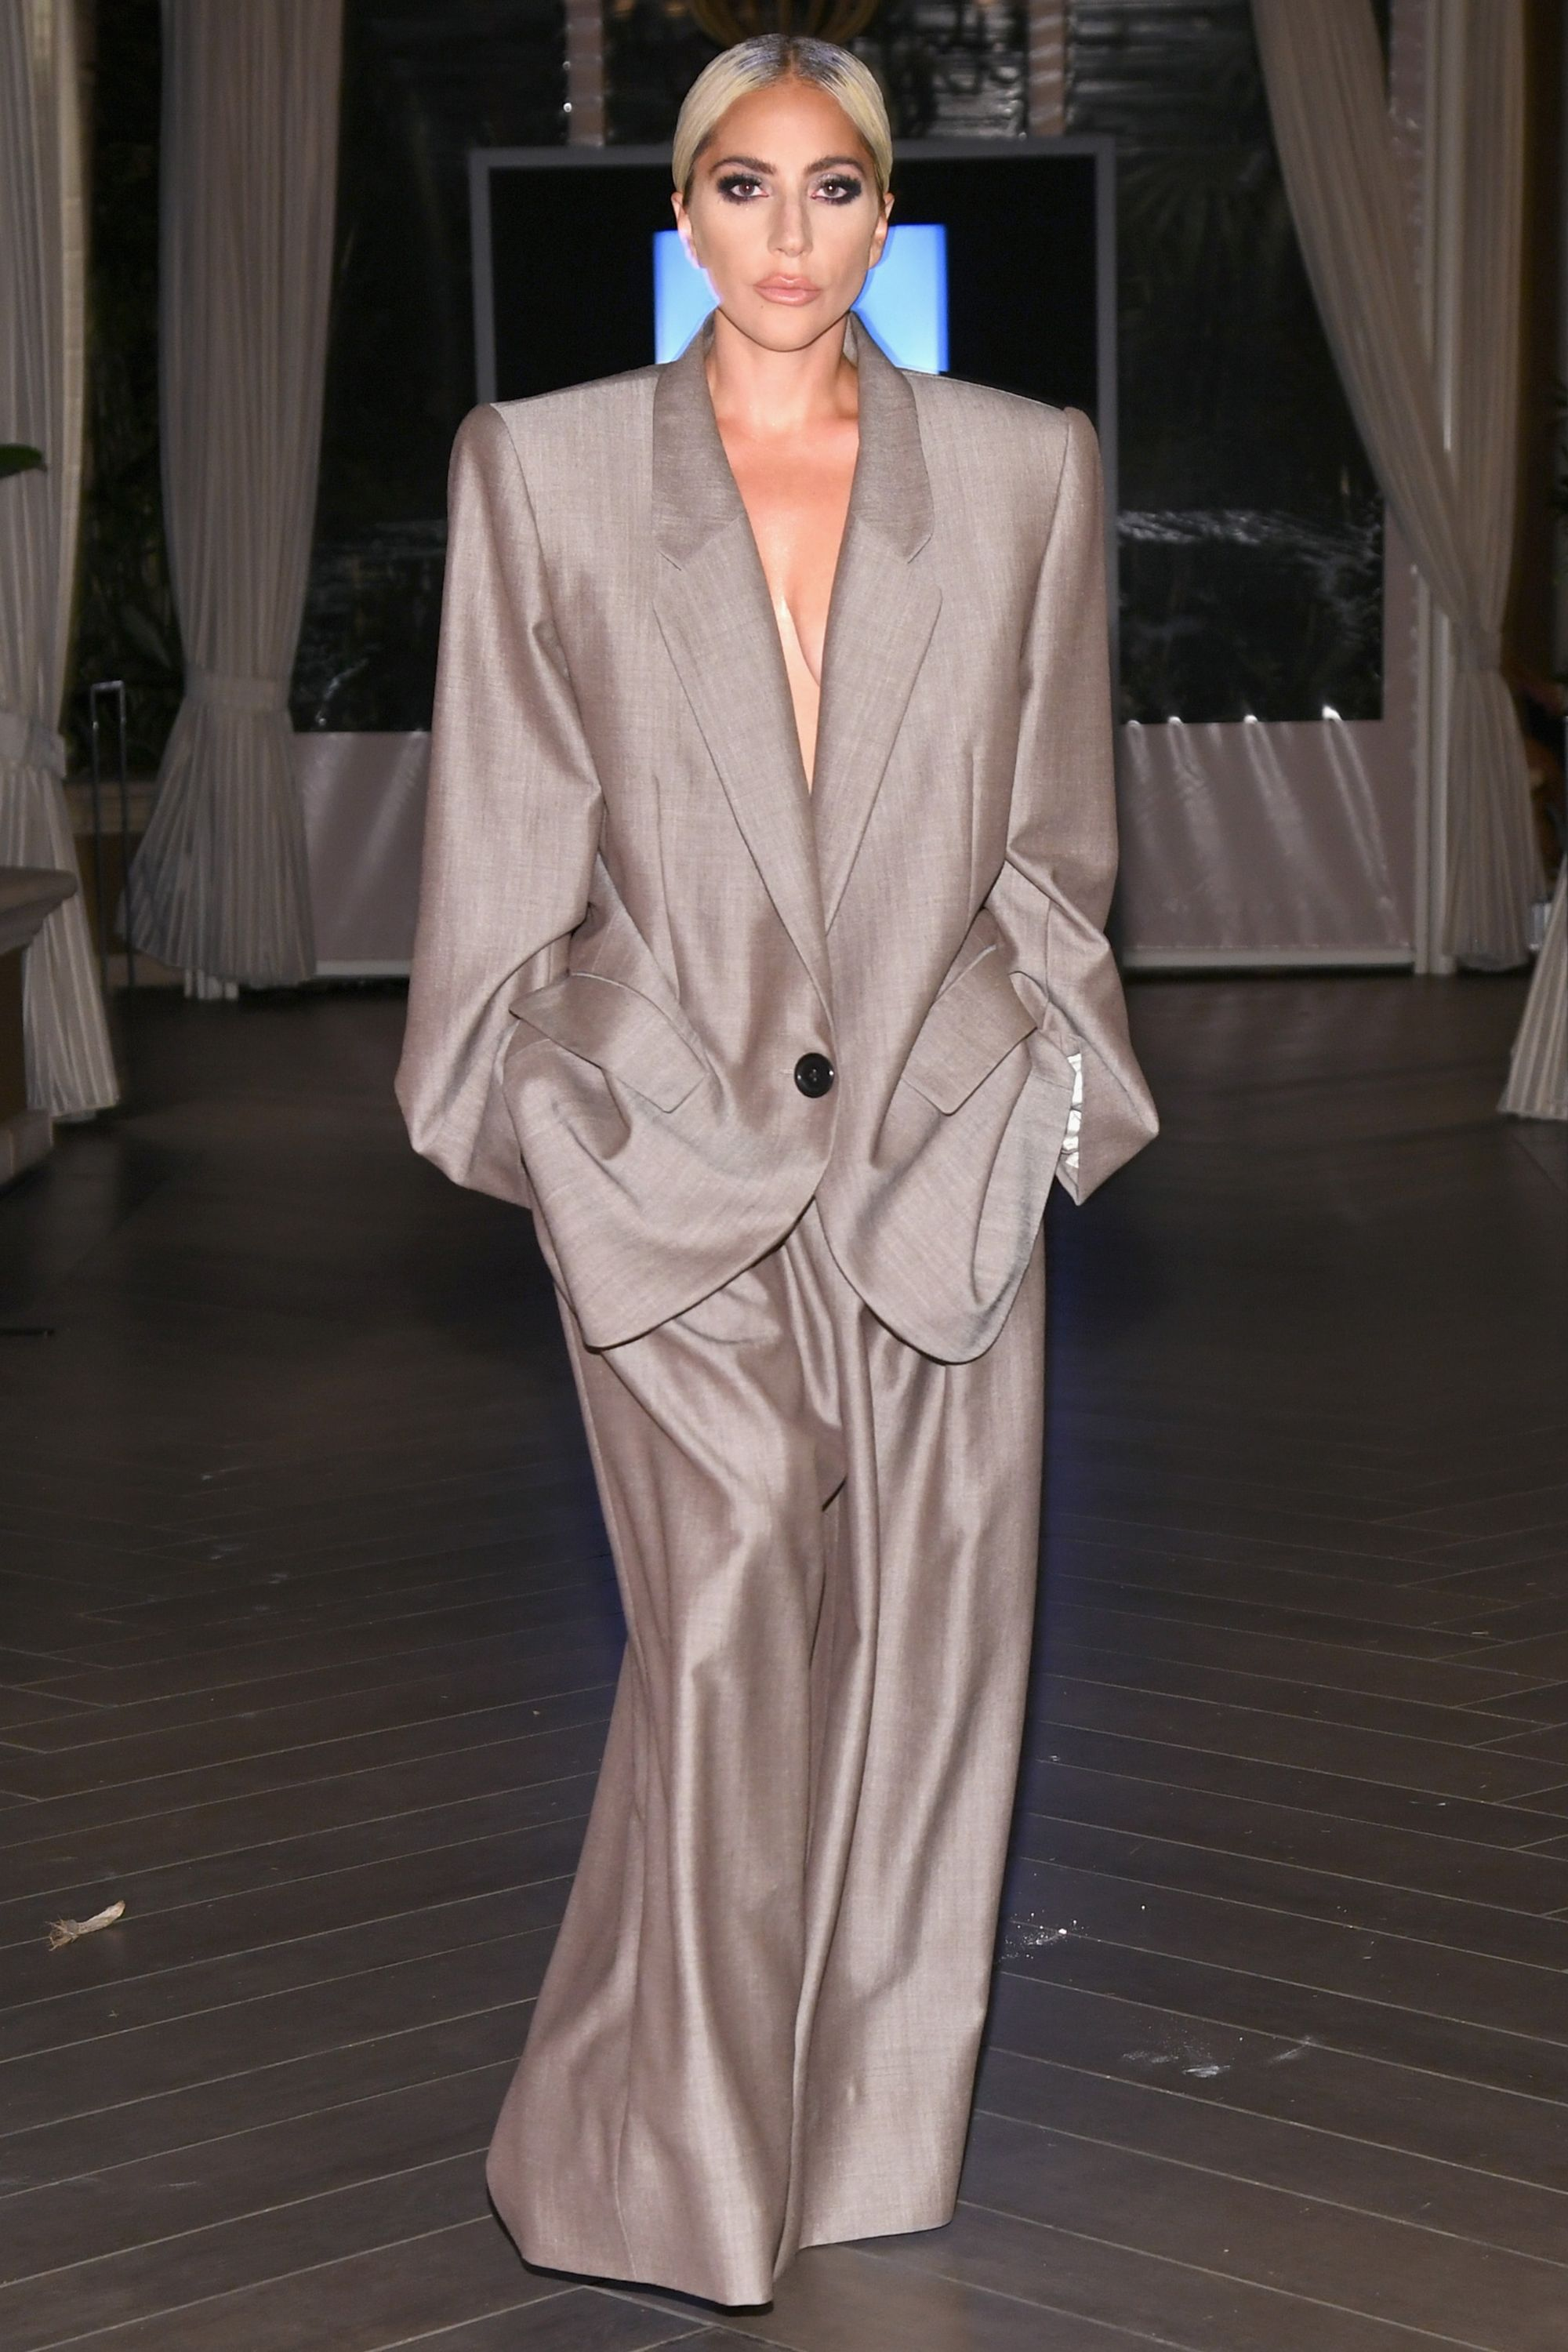 b8a902b6a59 Lady Gaga s Best Style Moments - Lady Gaga Outfits and Best Fashion Looks